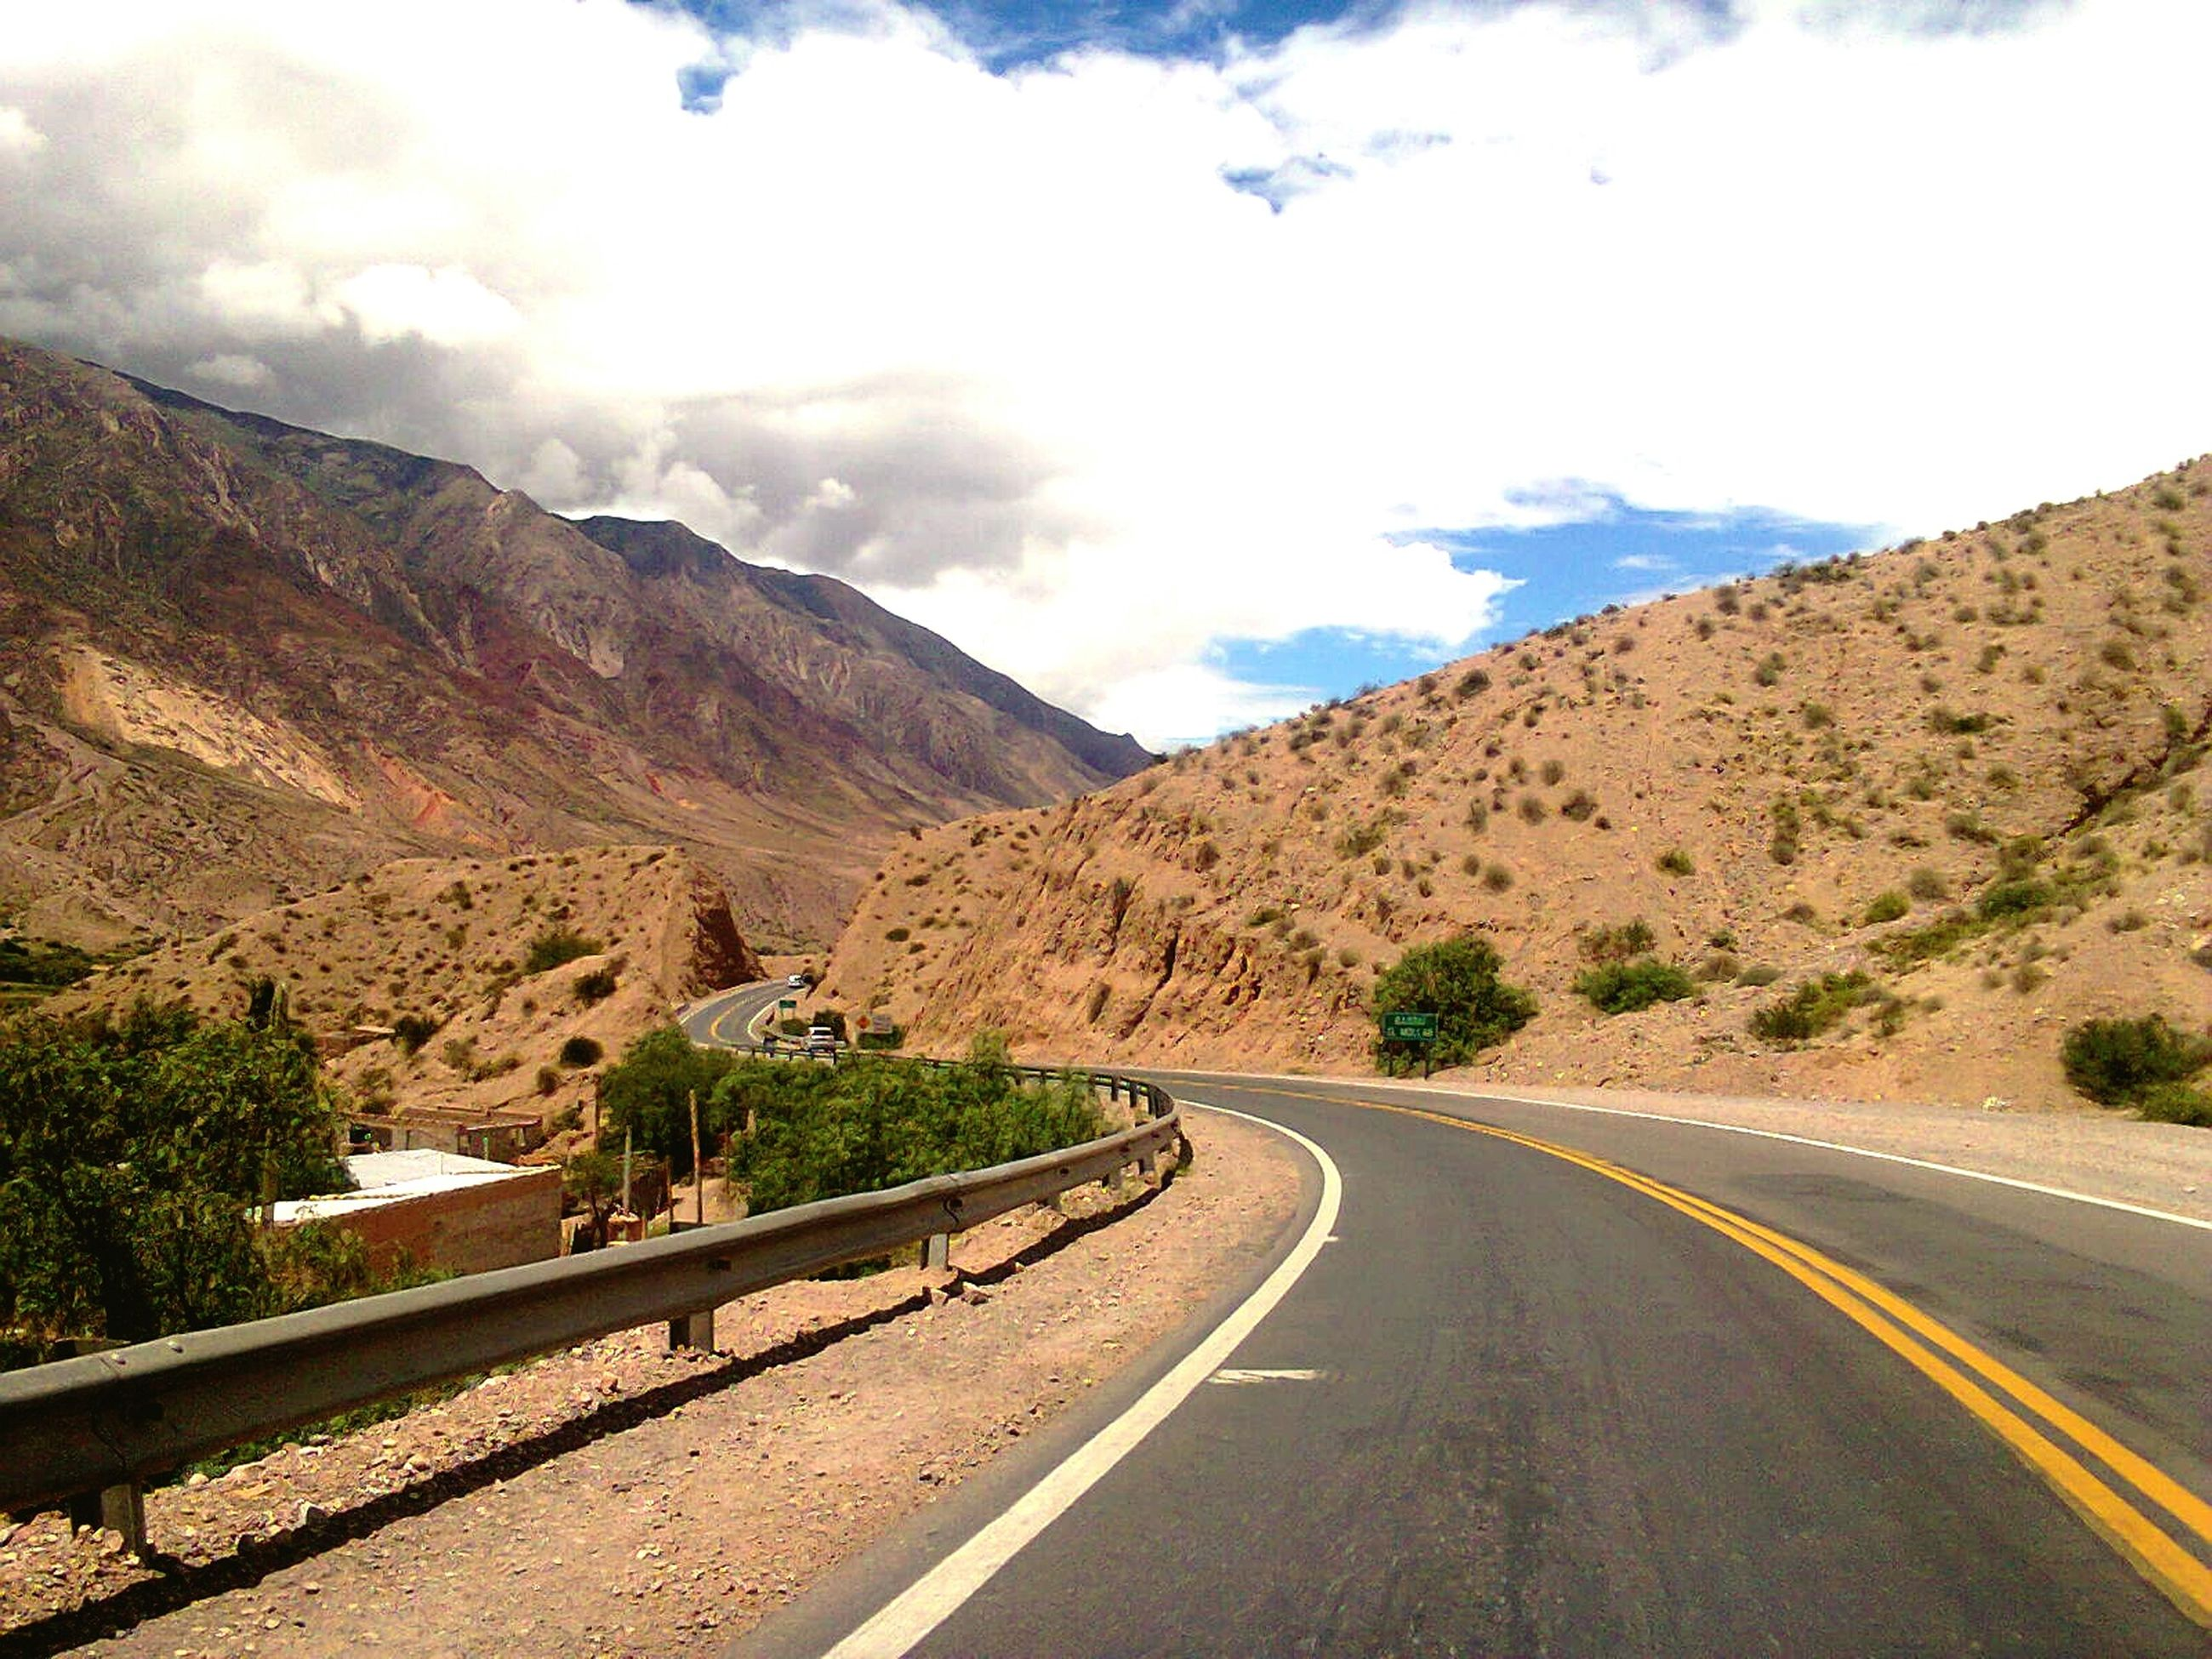 road, the way forward, transportation, mountain, road marking, sky, diminishing perspective, country road, vanishing point, mountain range, cloud - sky, empty road, asphalt, landscape, tranquil scene, cloud, street, nature, empty, tranquility